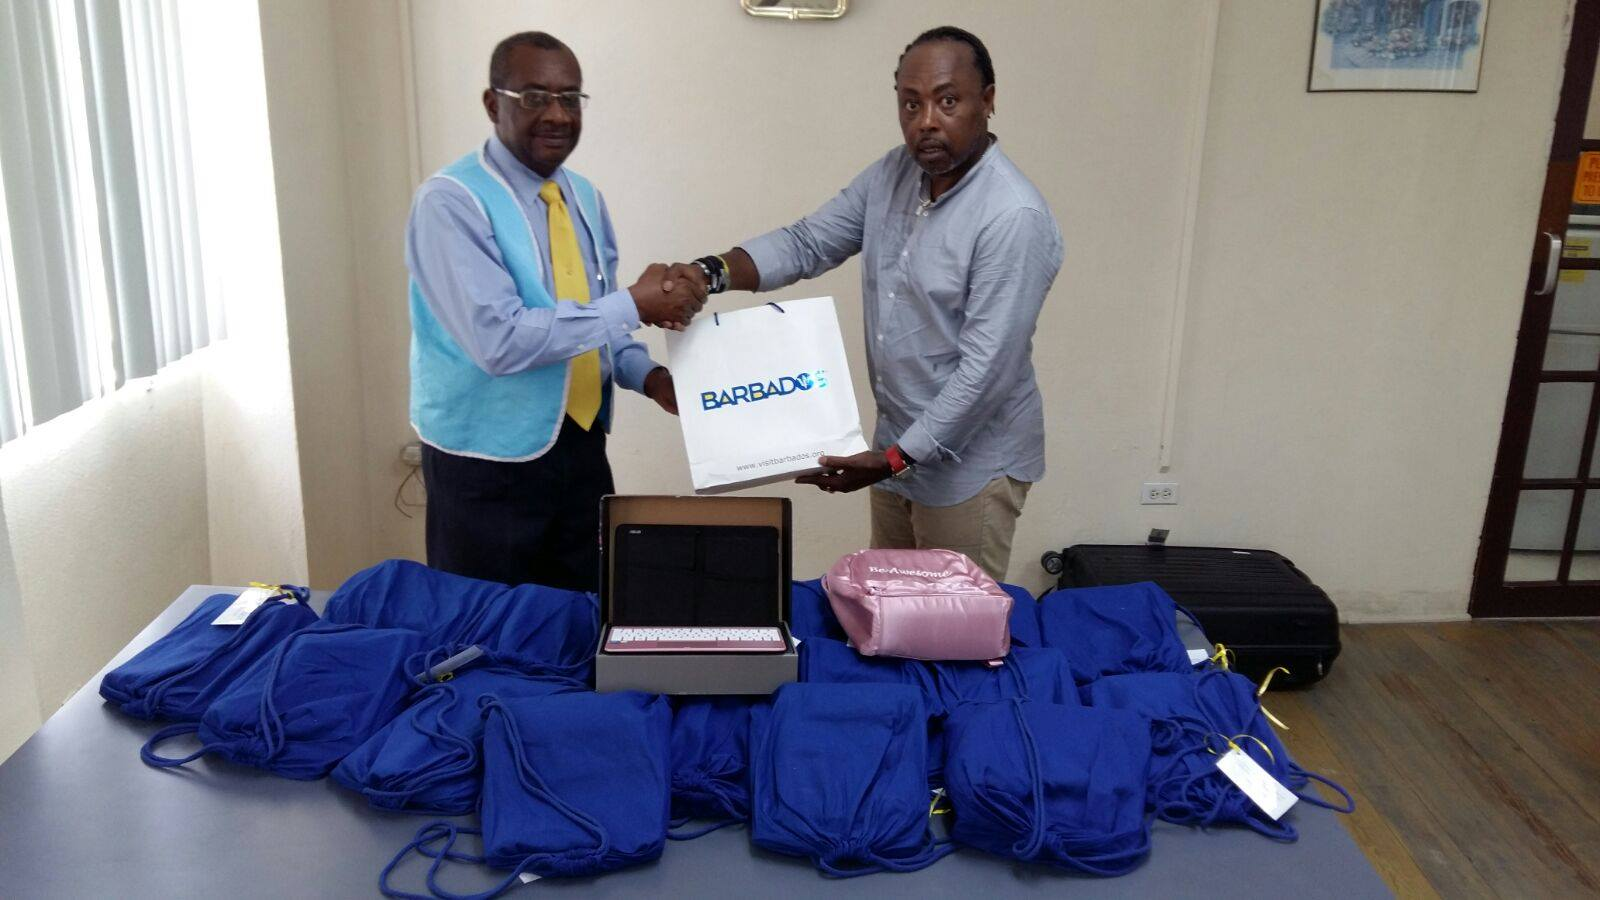 Barbados High Commissioners Office In London Donation